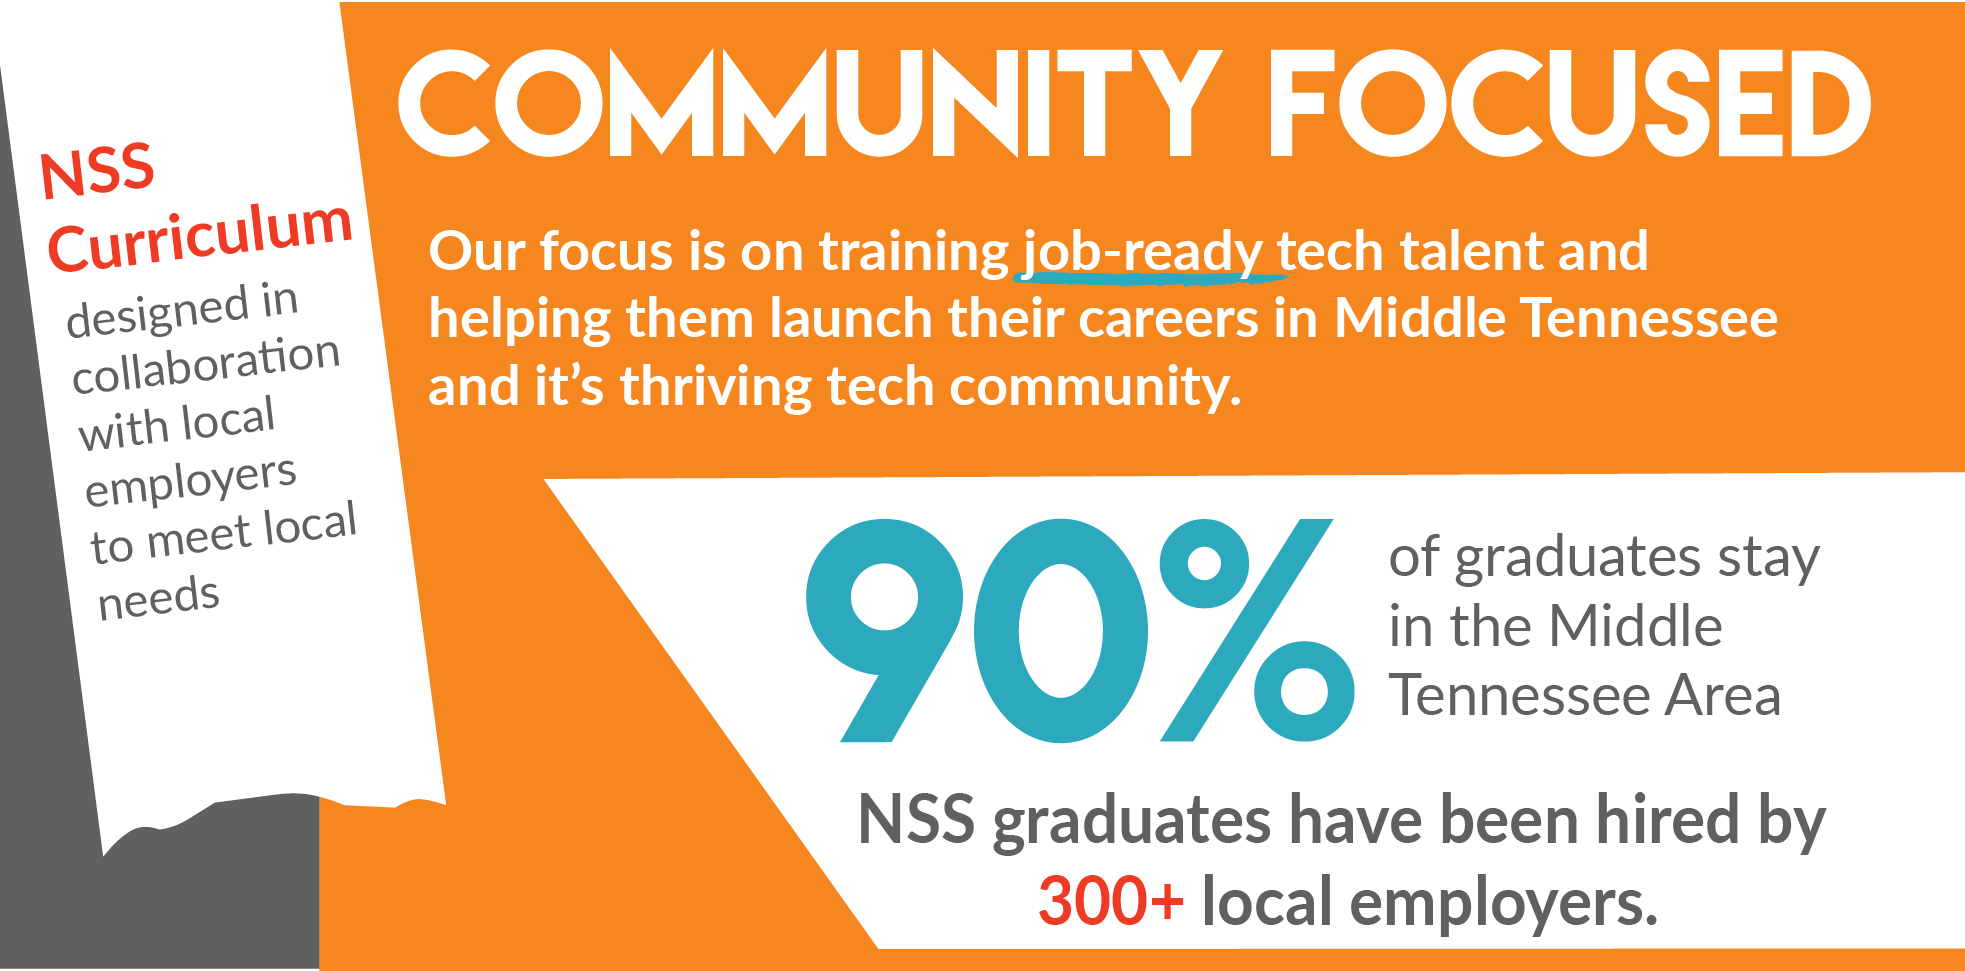 Community Focused - 90% of graduates stay in the Middle Tennessee area